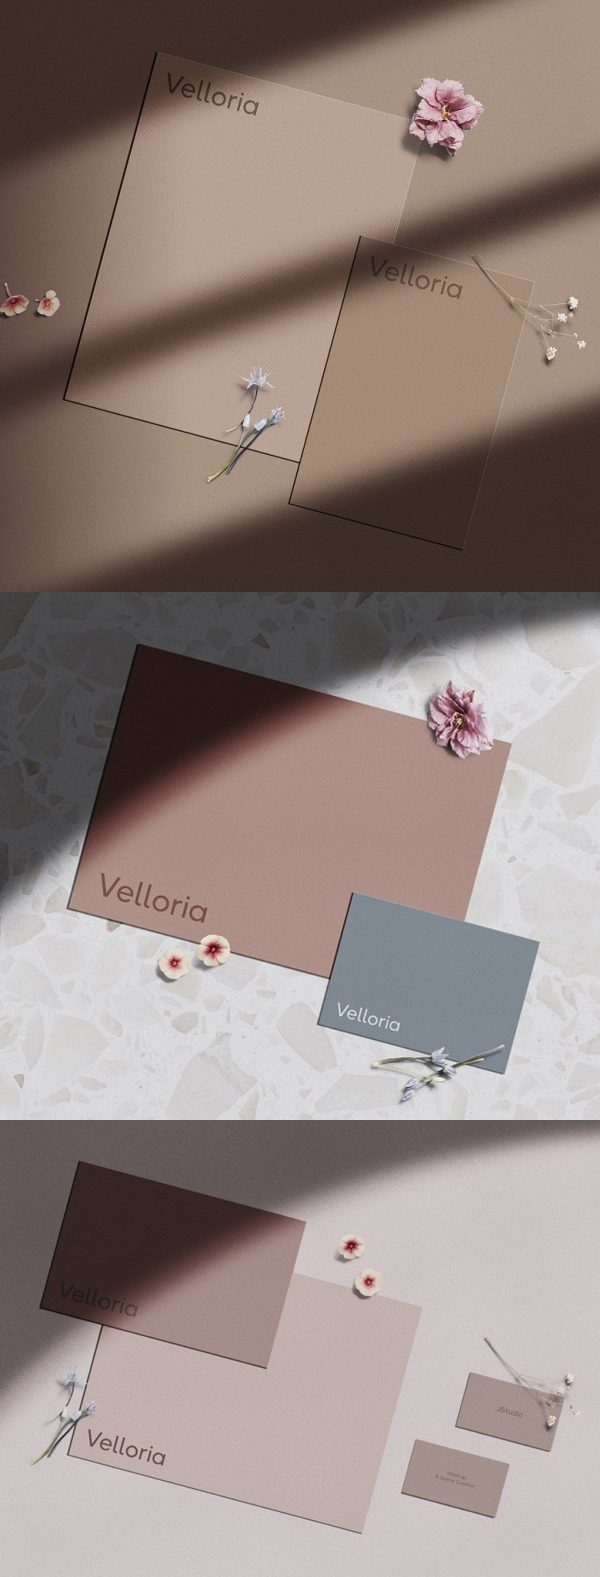 Velloria Mini — Stationery Mockup